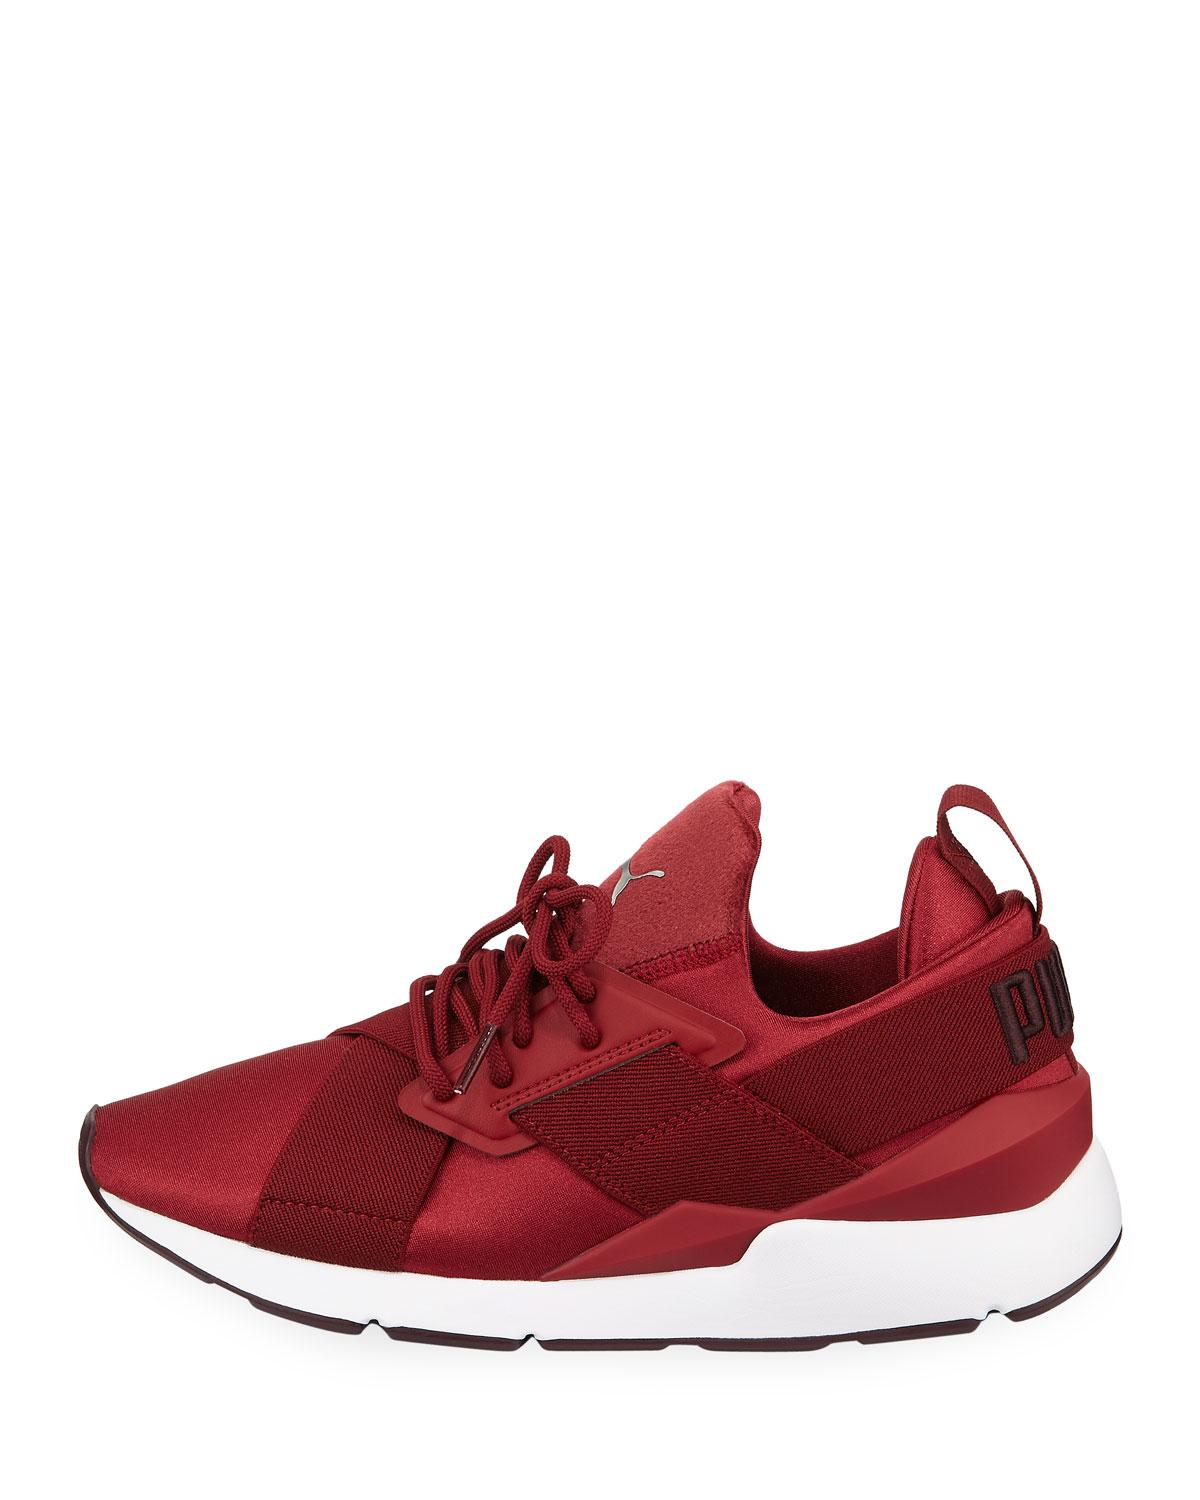 5e8af2fdc971 Lyst - PUMA Muse Satin Ii Lace-up Sneakers in Red - Save 35%